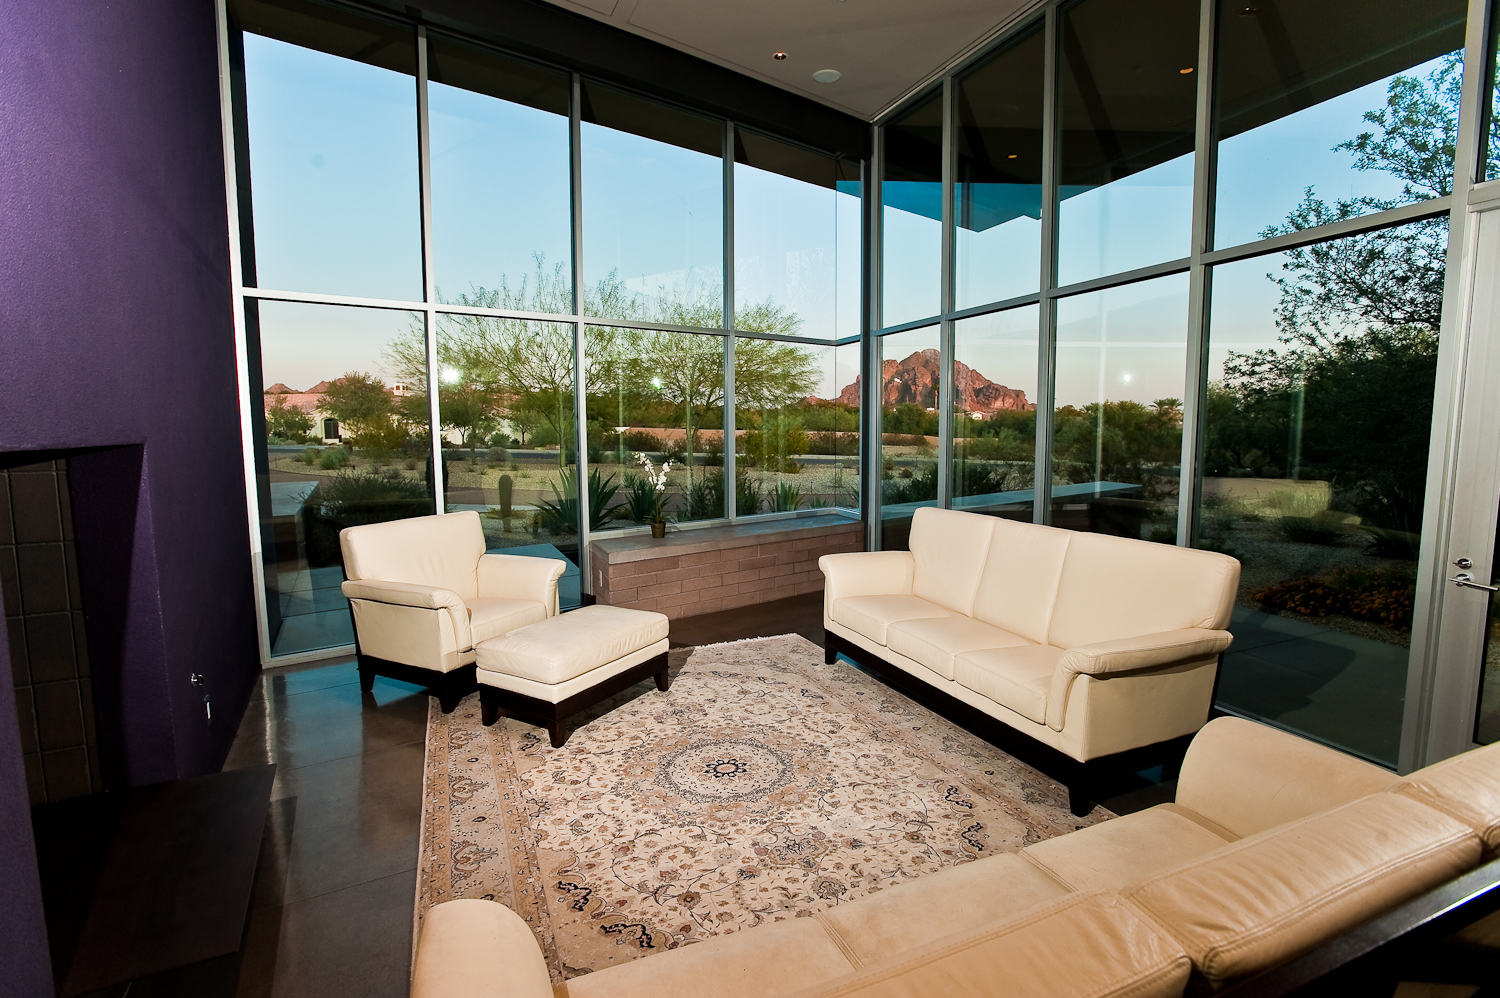 living room looking to camelback.jpg